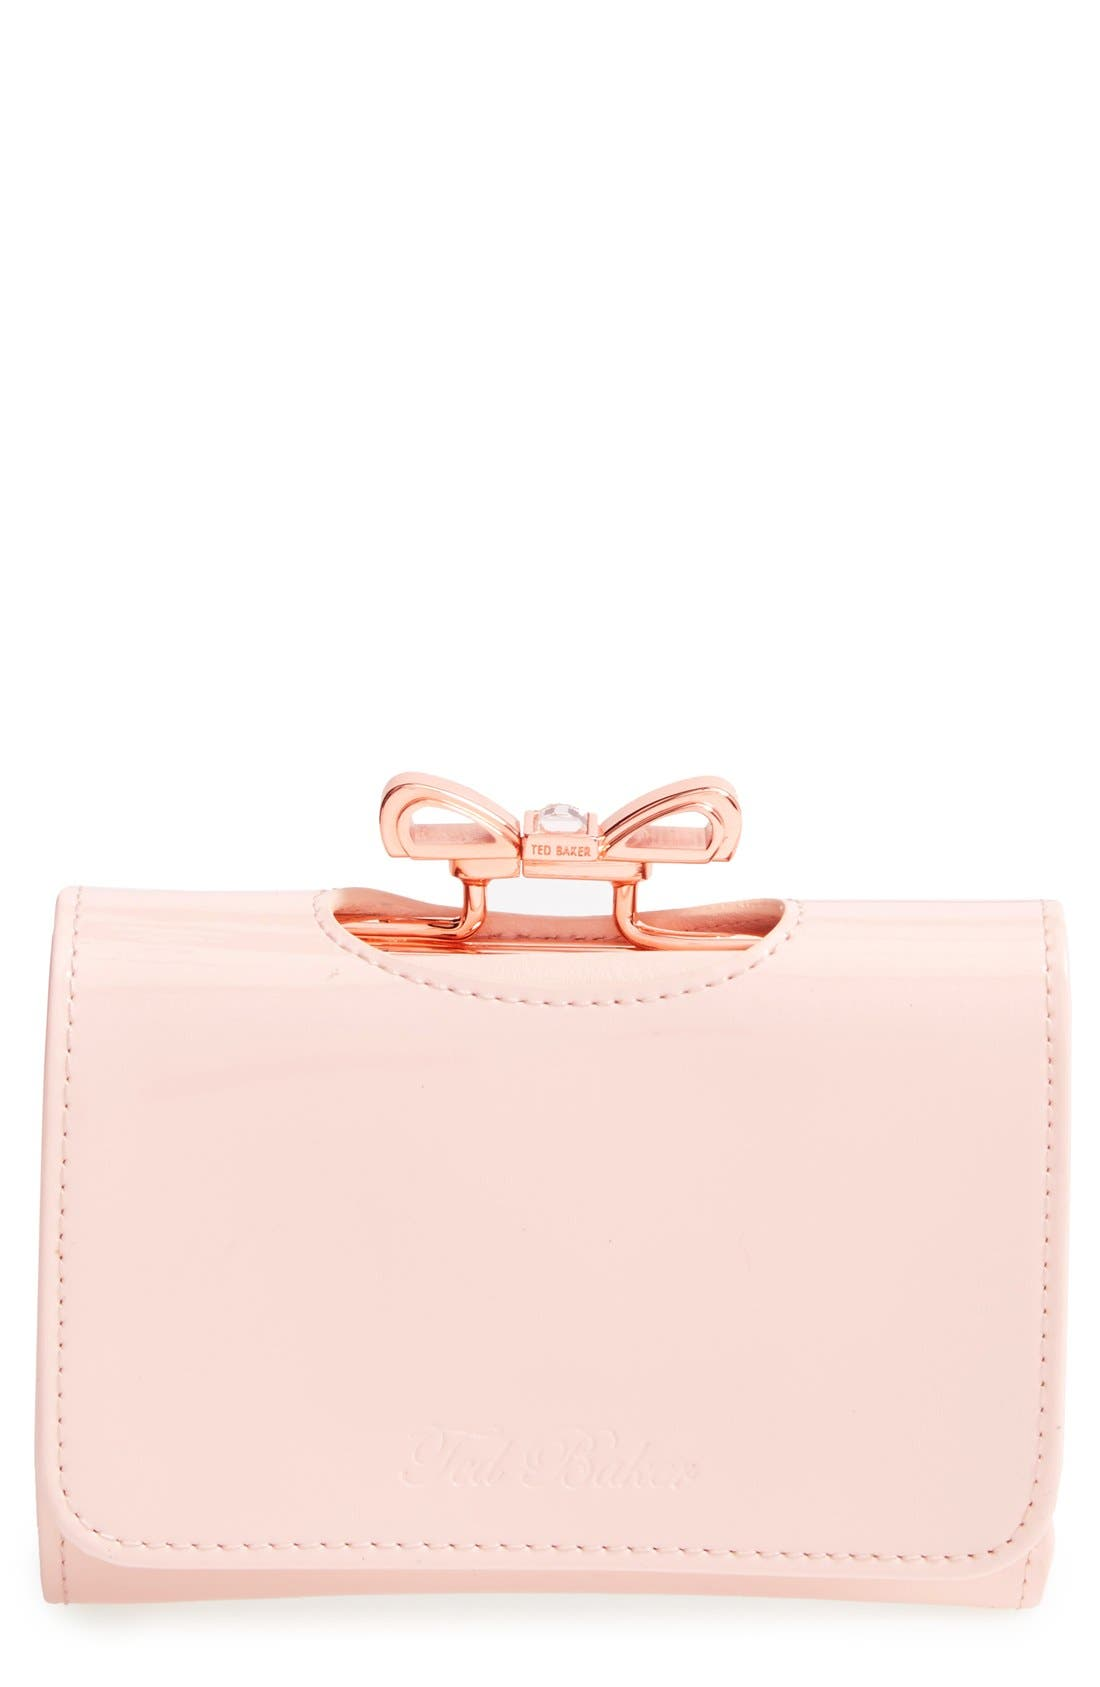 'Crystal Bow - Small' Patent Leather Clutch Wallet,                         Main,                         color, Light Pink